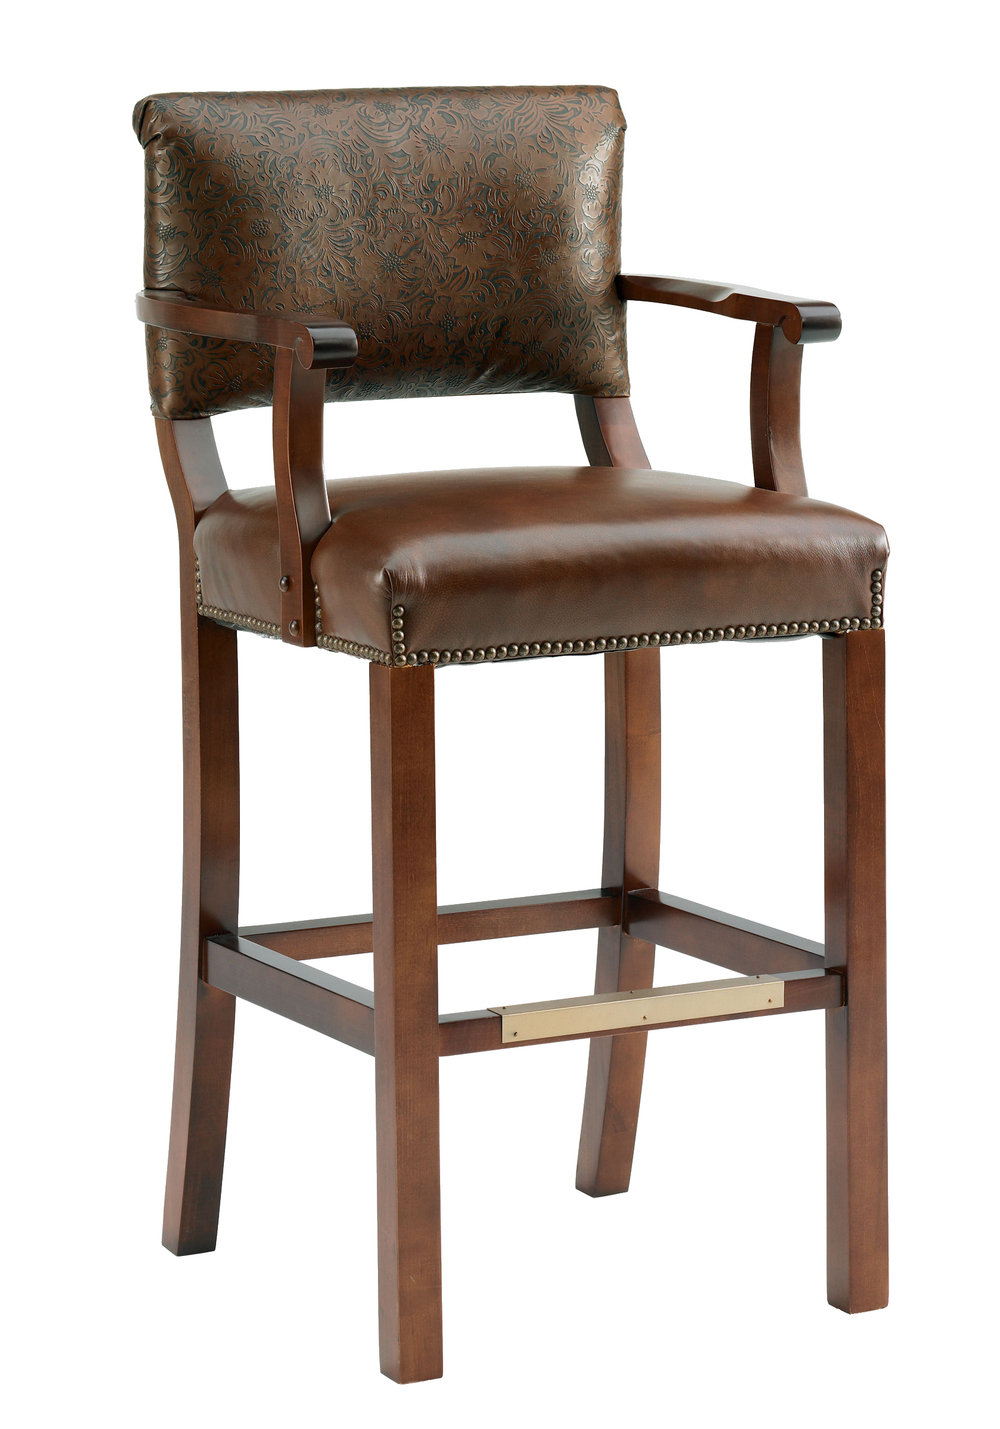 Tamiami Designer Barstool with Arms